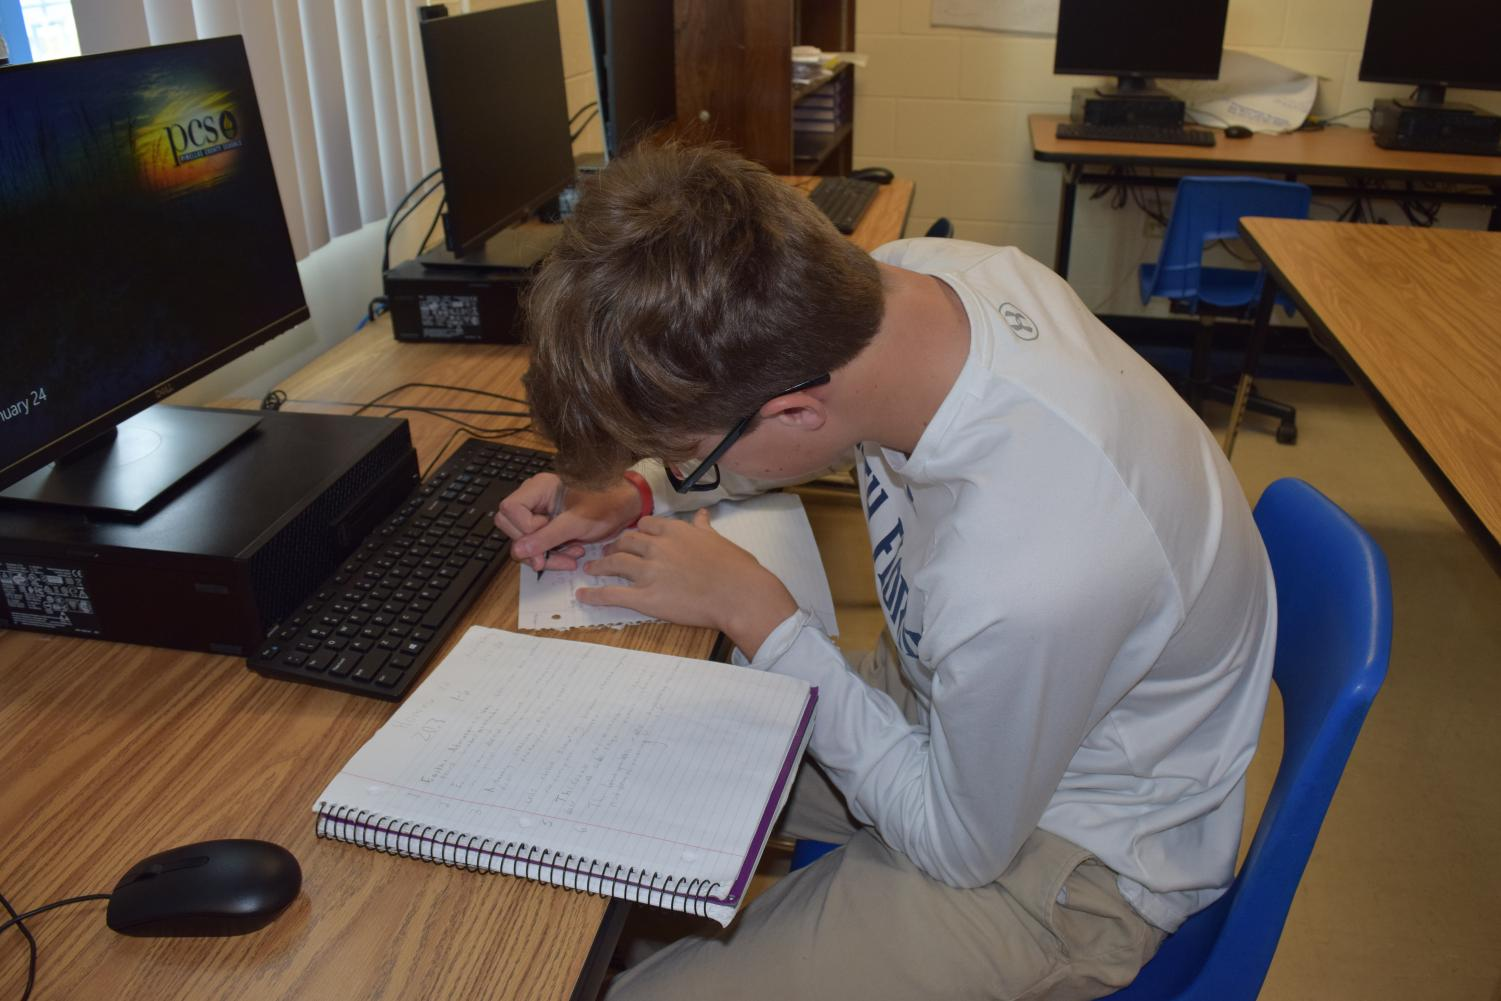 A new study shows Florida is one of the most stressed states. One source of stress for students is homework.